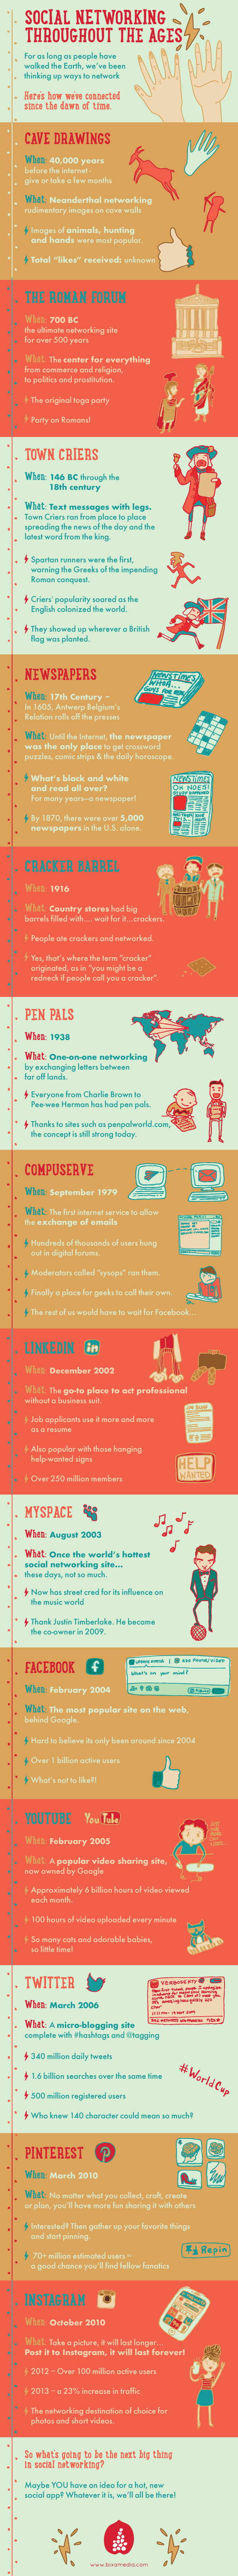 Social-Media-Throughout-The-Ages